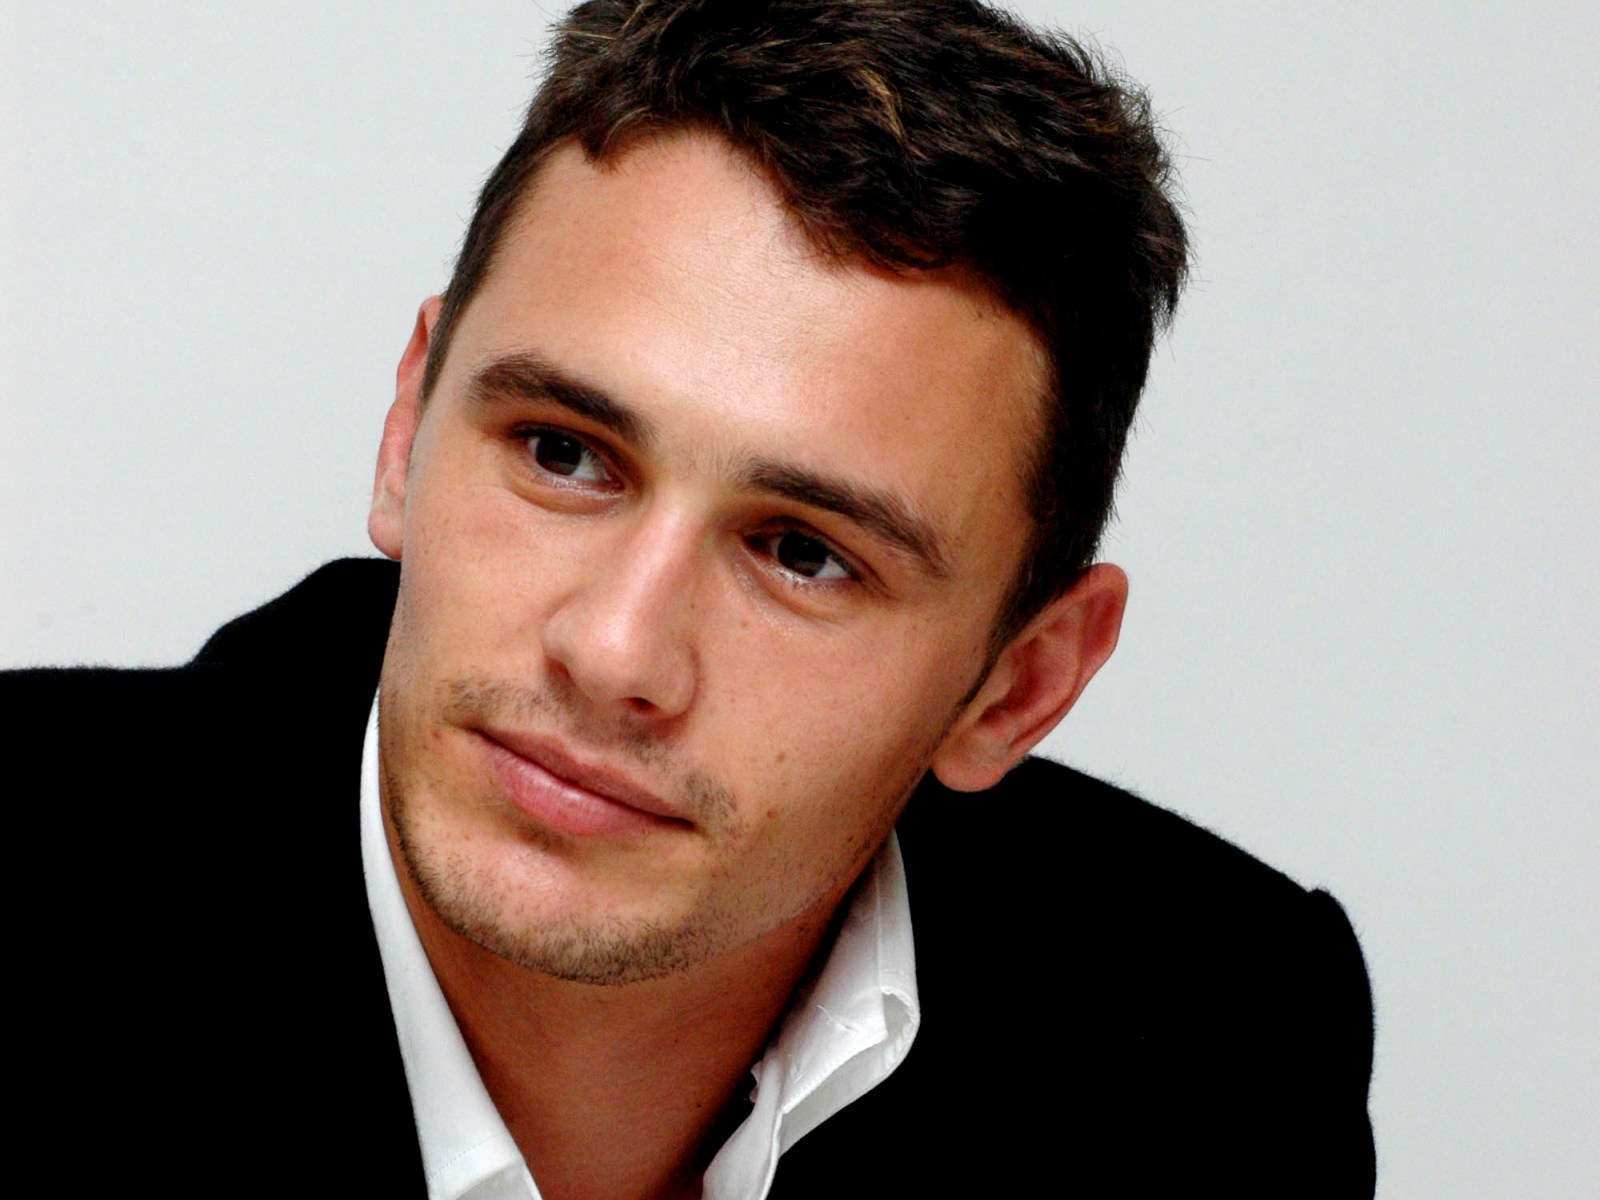 james franco computer wallpaper 52855